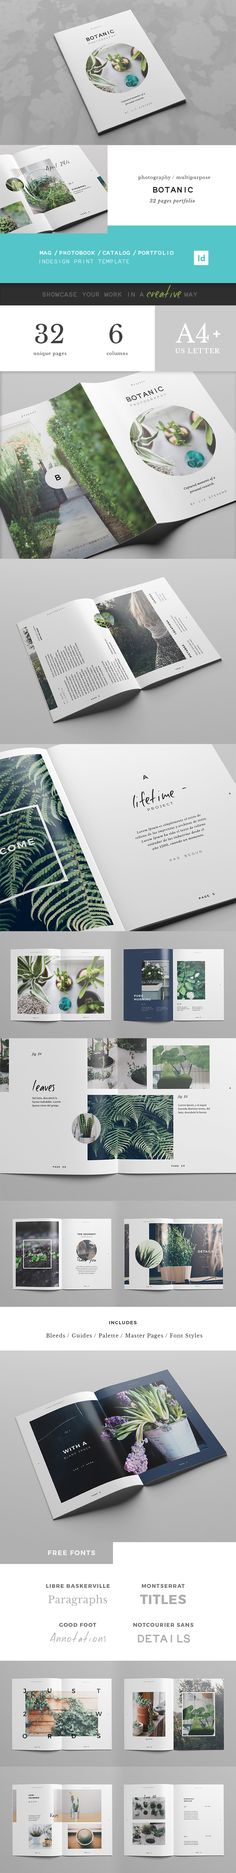 Inspiration, editorial ideal, green   Botanic Portfolio Template on Behance